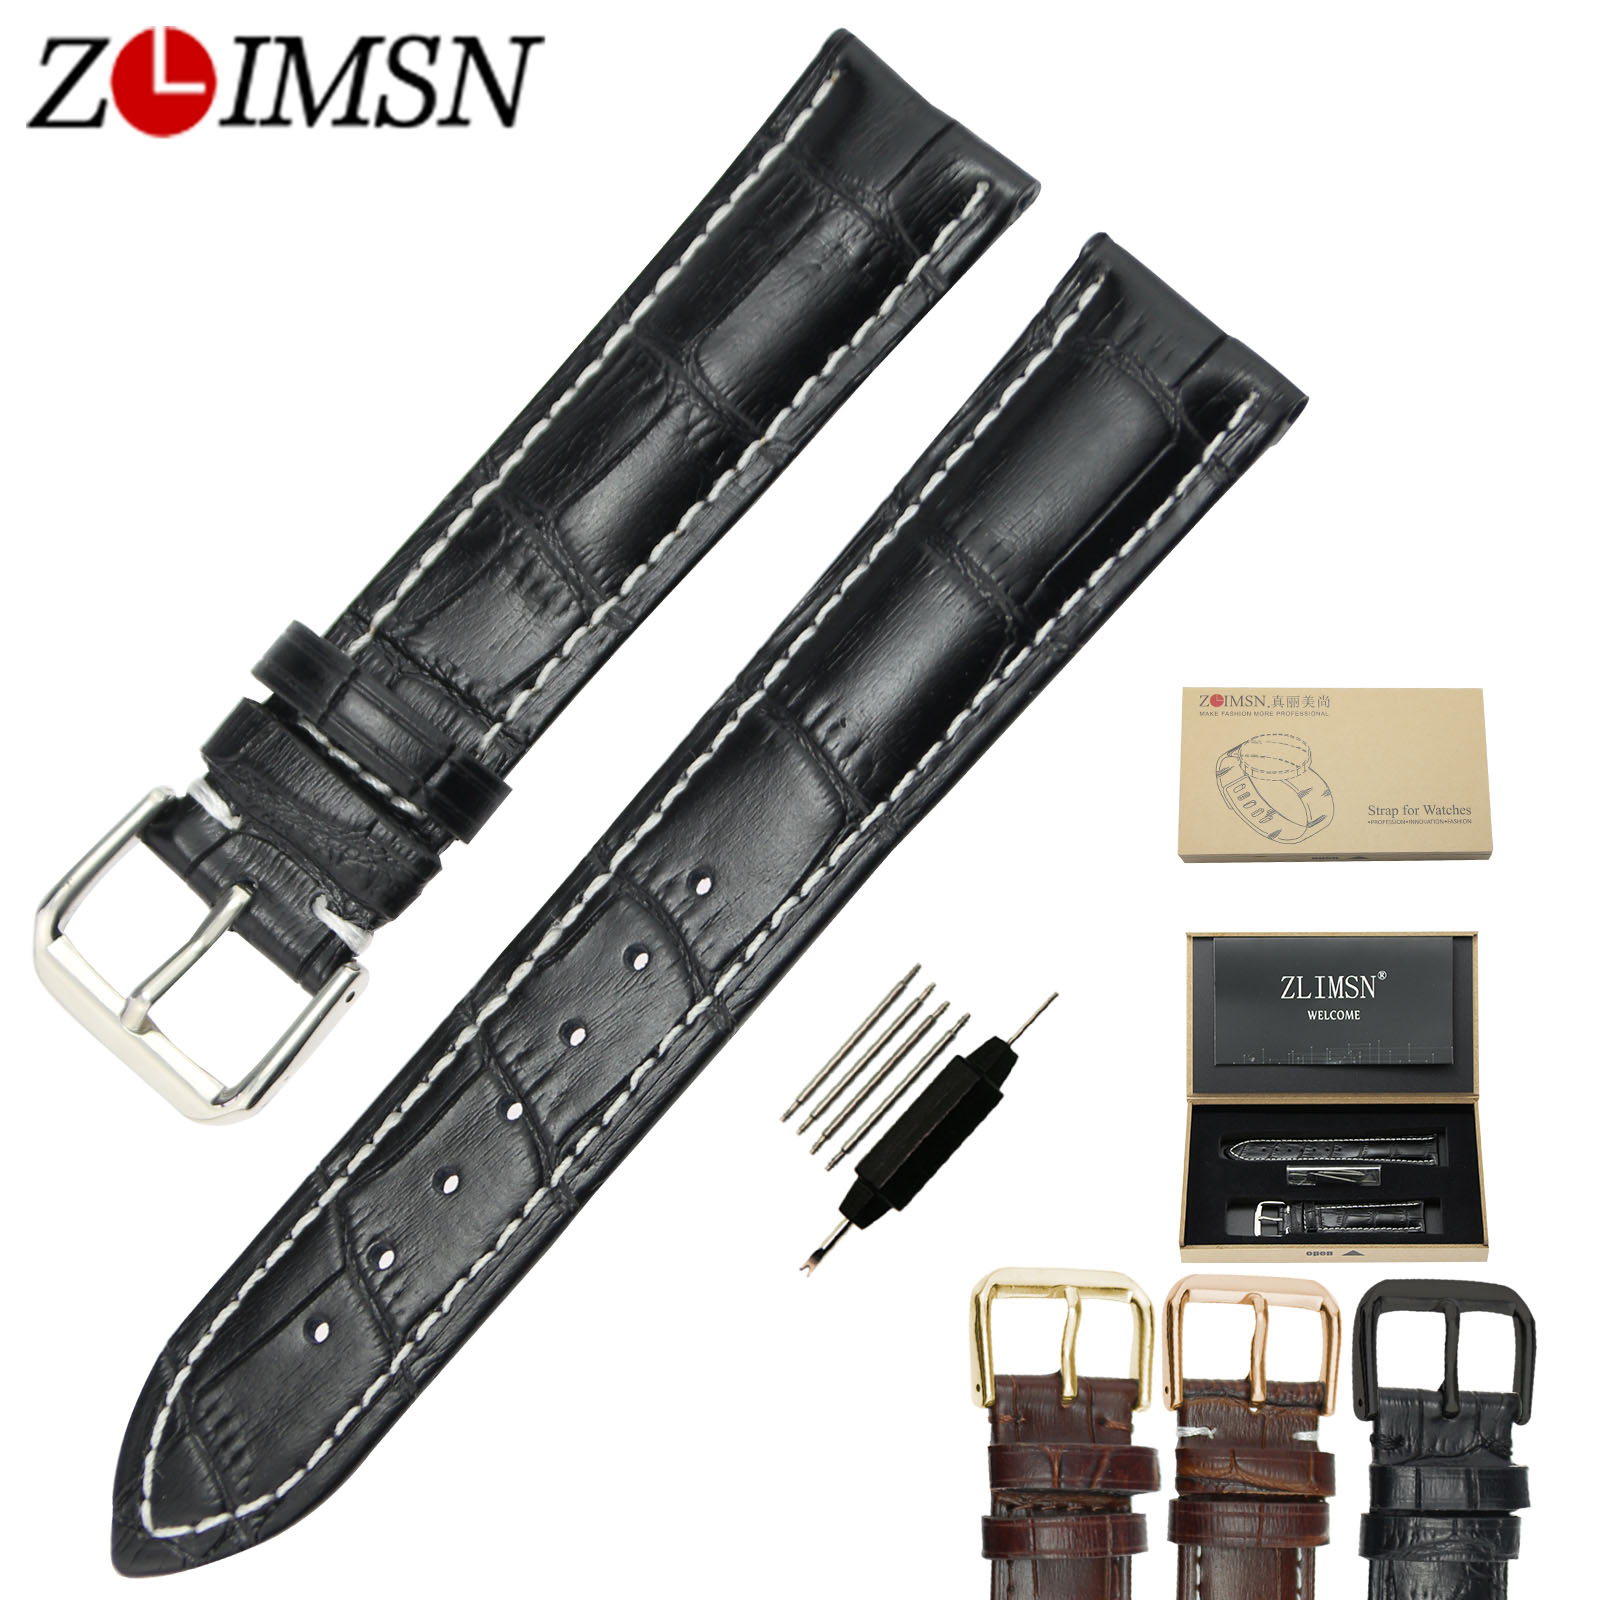 ZLIMSN Genuine Leather Watchbands for Casio Watch Belt 18 19 20 21 22 23 24mm Stainless Steel Buckle Silver Gold Rose Polished zlimsn high quality thick genuine leather watchbands 20 22 24 26mm brown watch strap 316l brushed silver stainless steel buckle